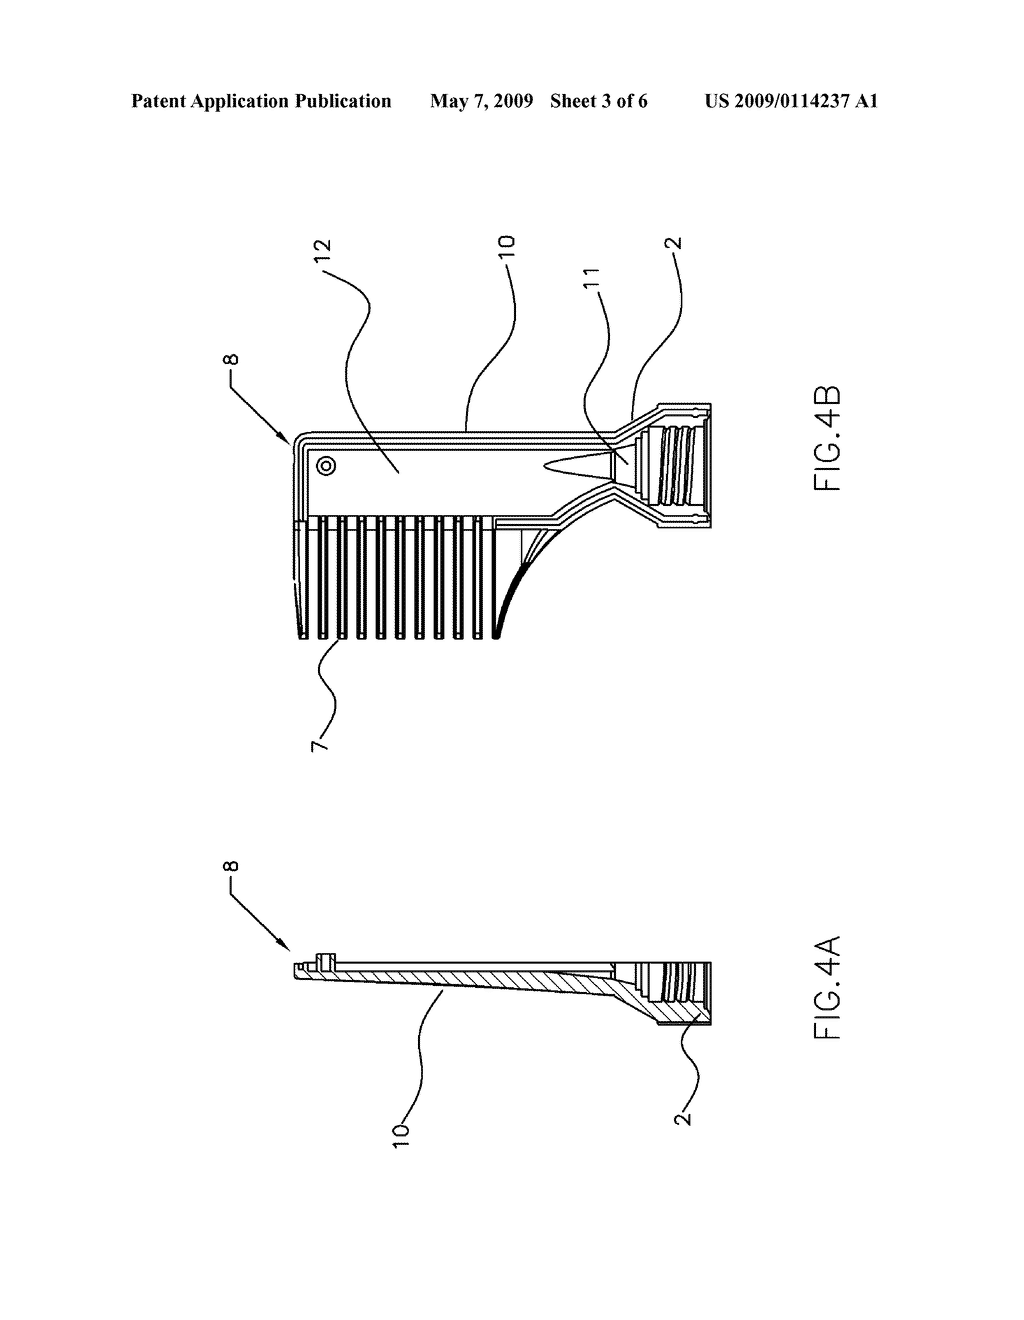 AIR OXIDATION HAIR DYE APPLICATION SYSTEM AND METHOD FOR COLORING HAIR USING THE SAME - diagram, schematic, and image 04